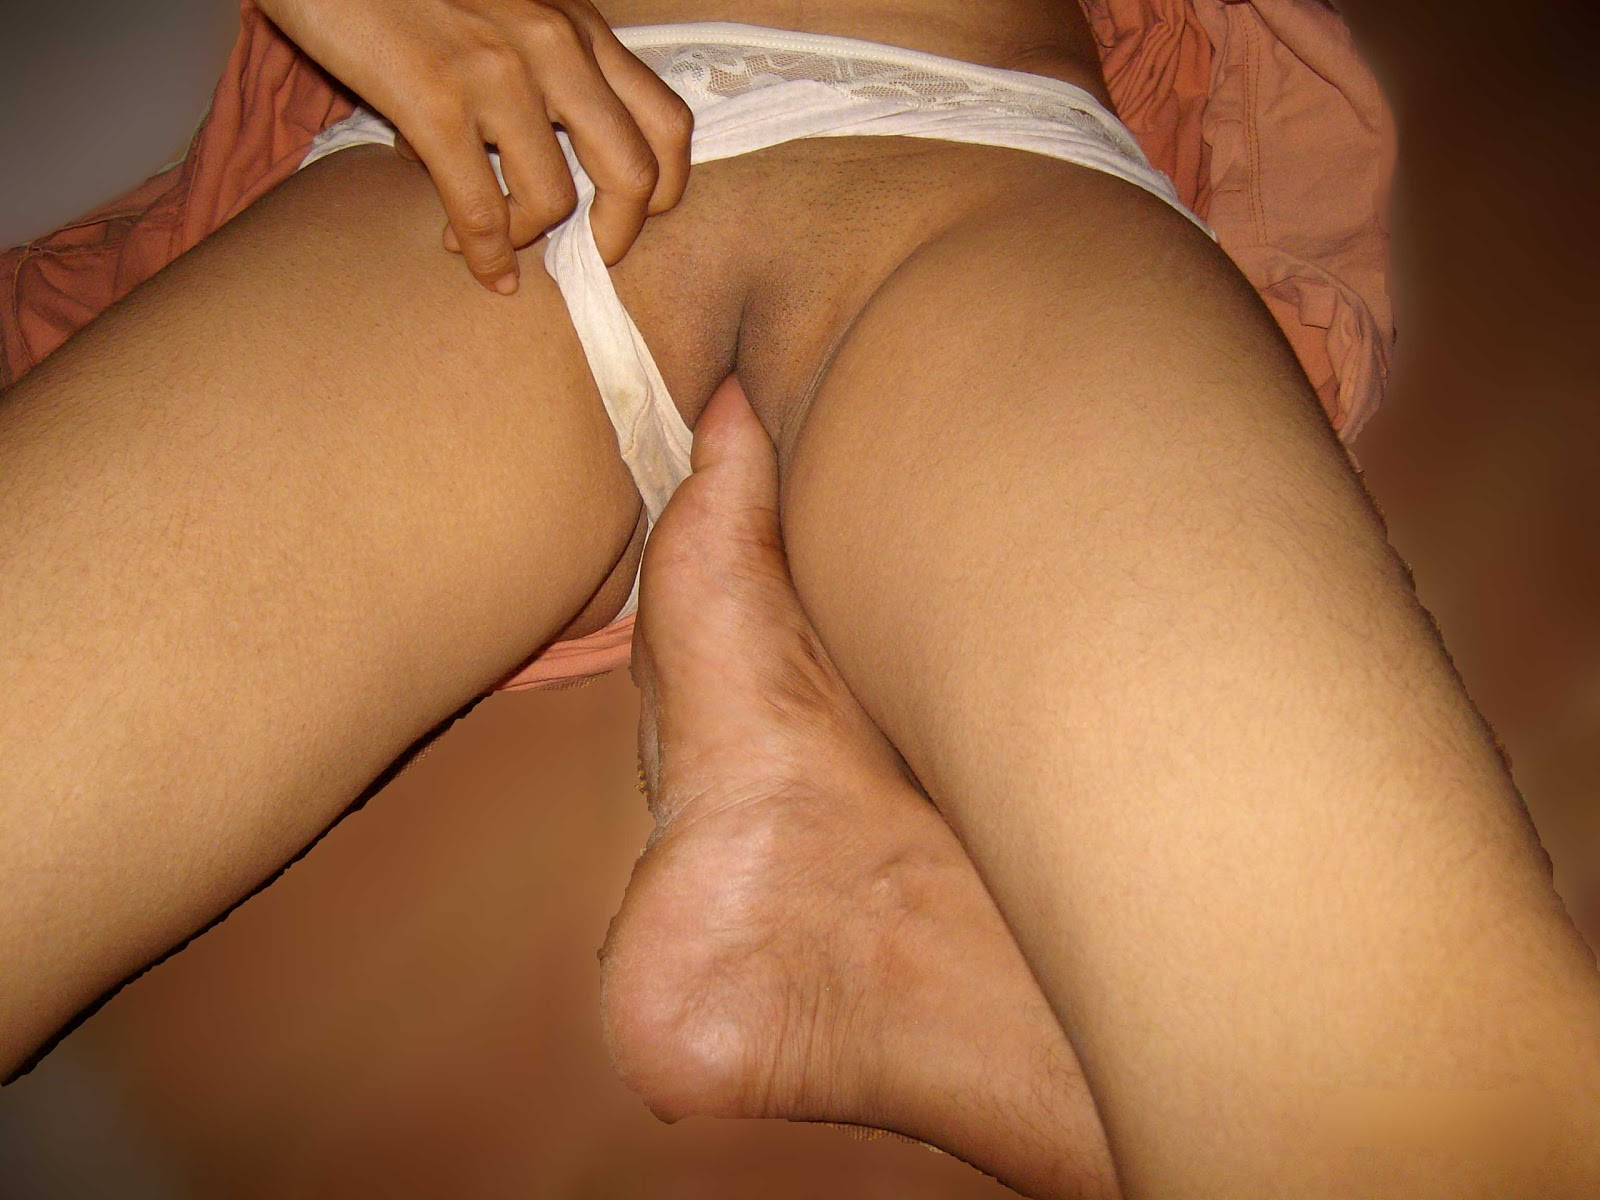 Theme simply Nude pakistani ass pic can recommend